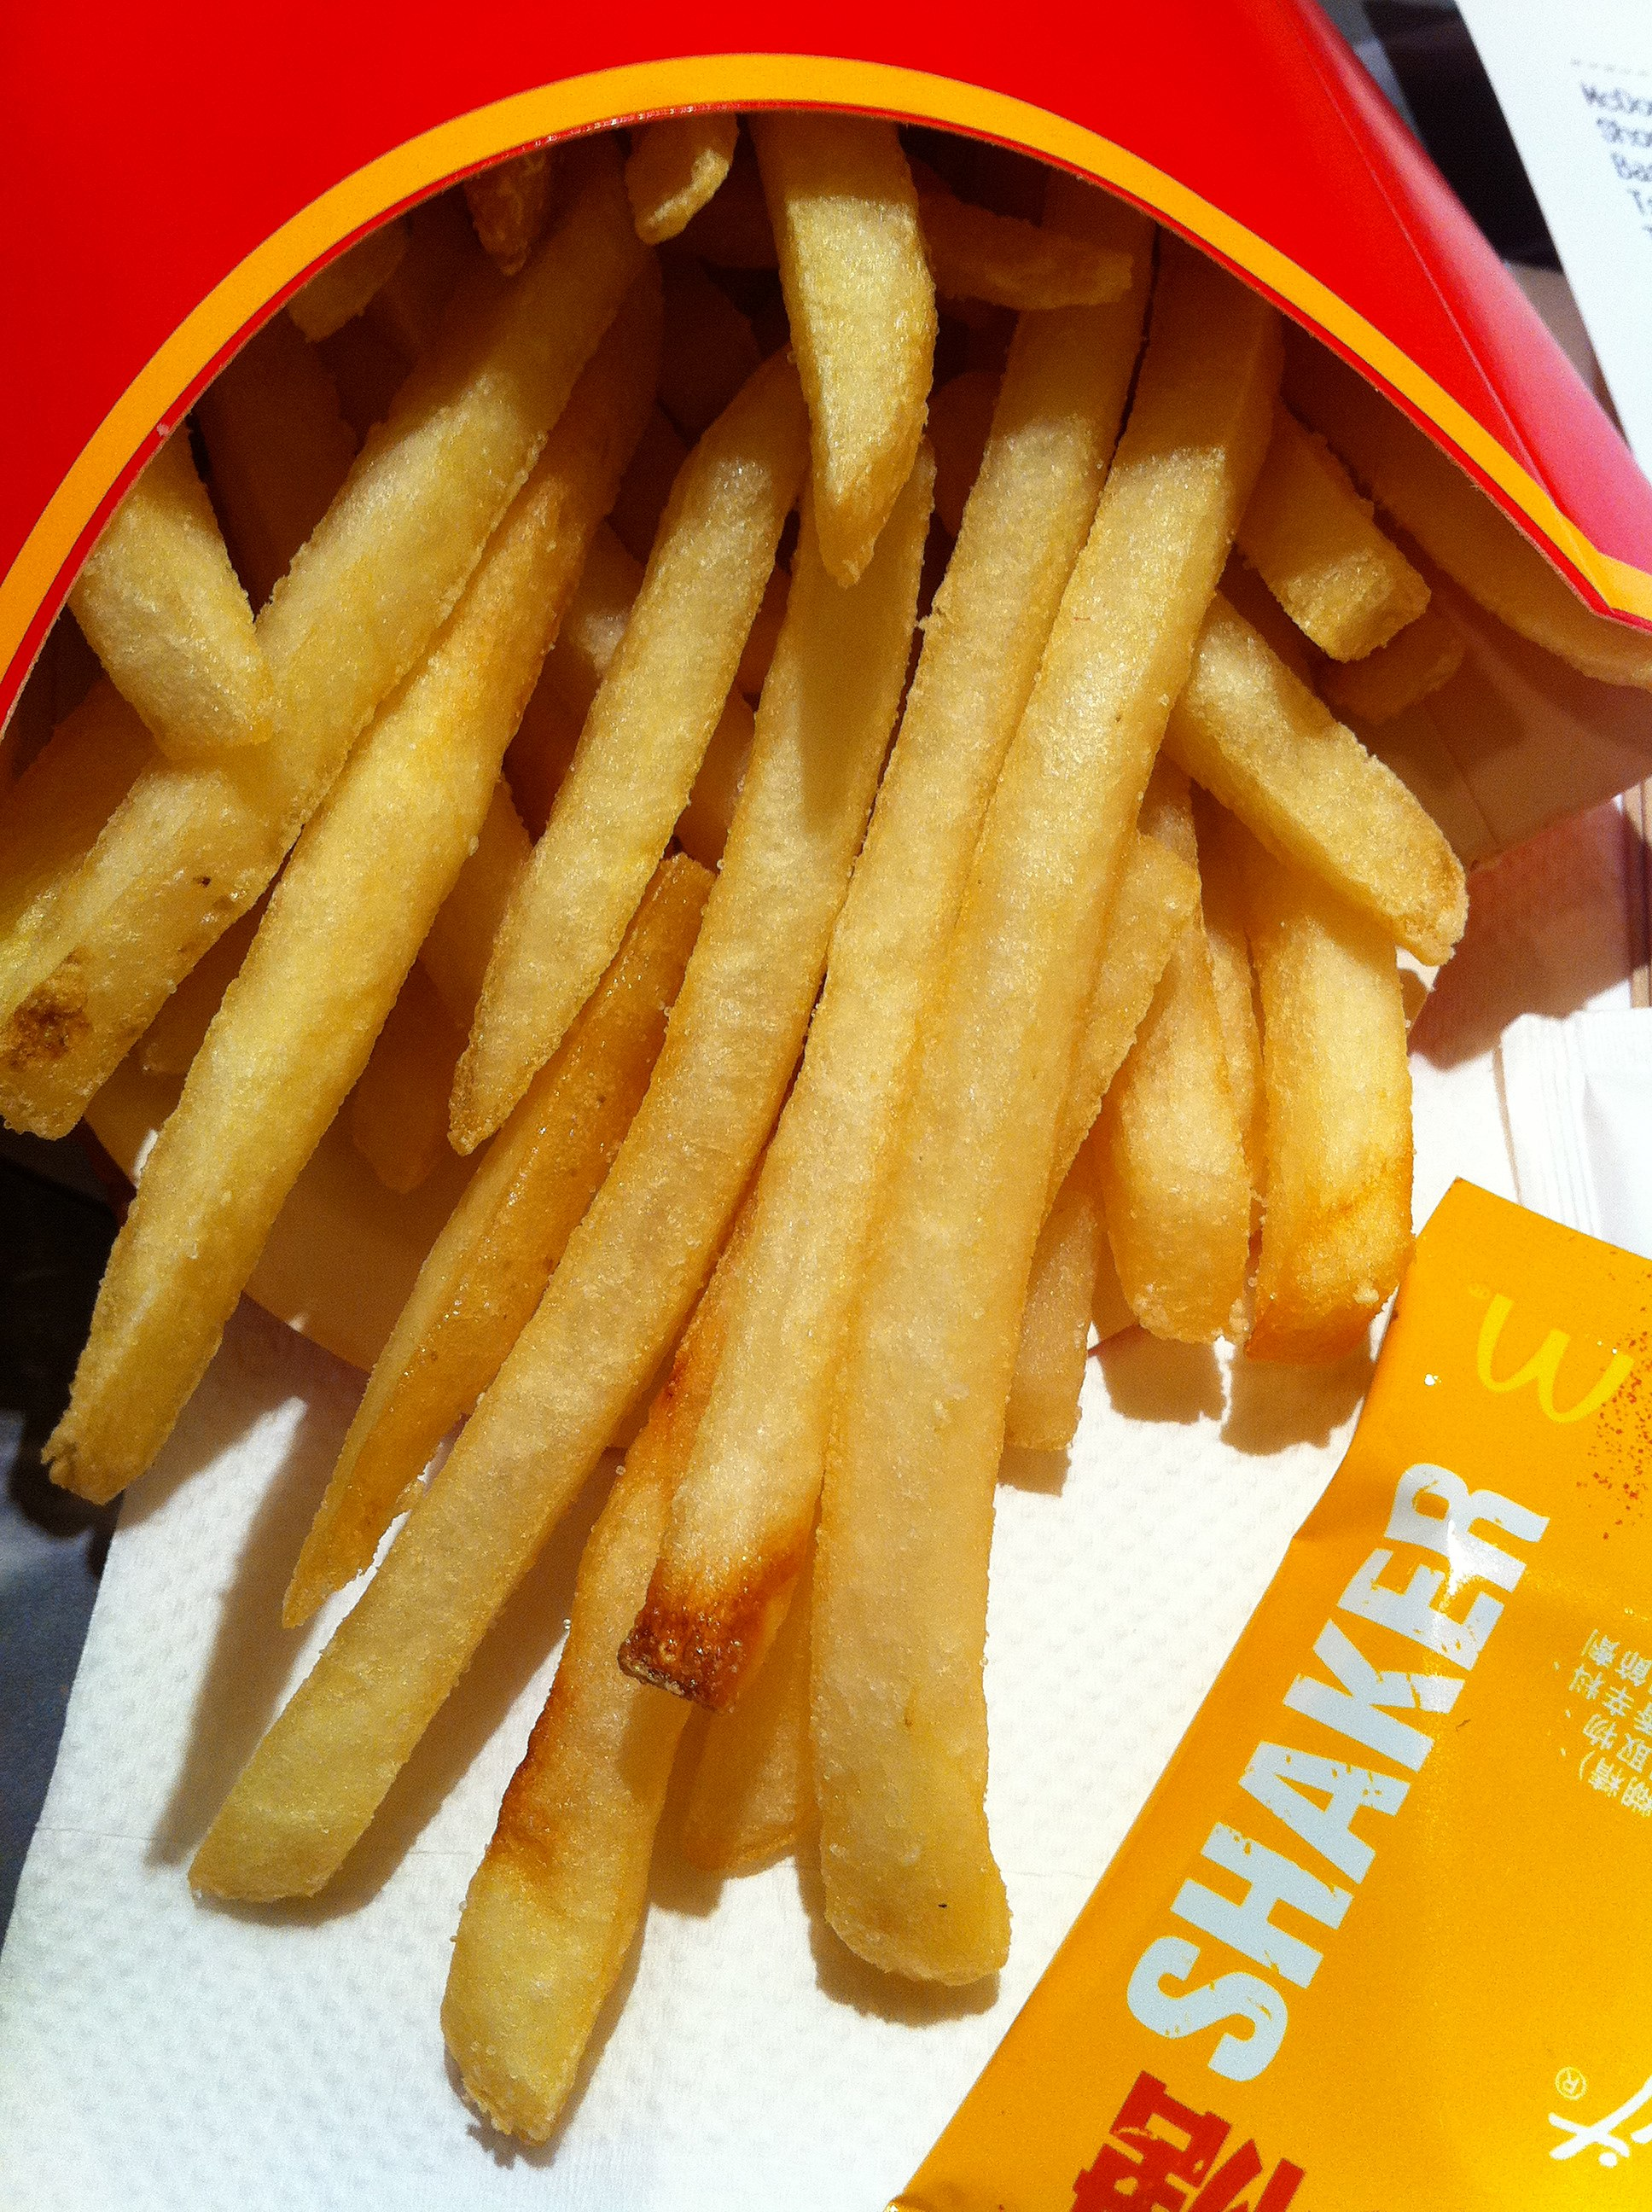 Mcdonalds Free Fries And Drink